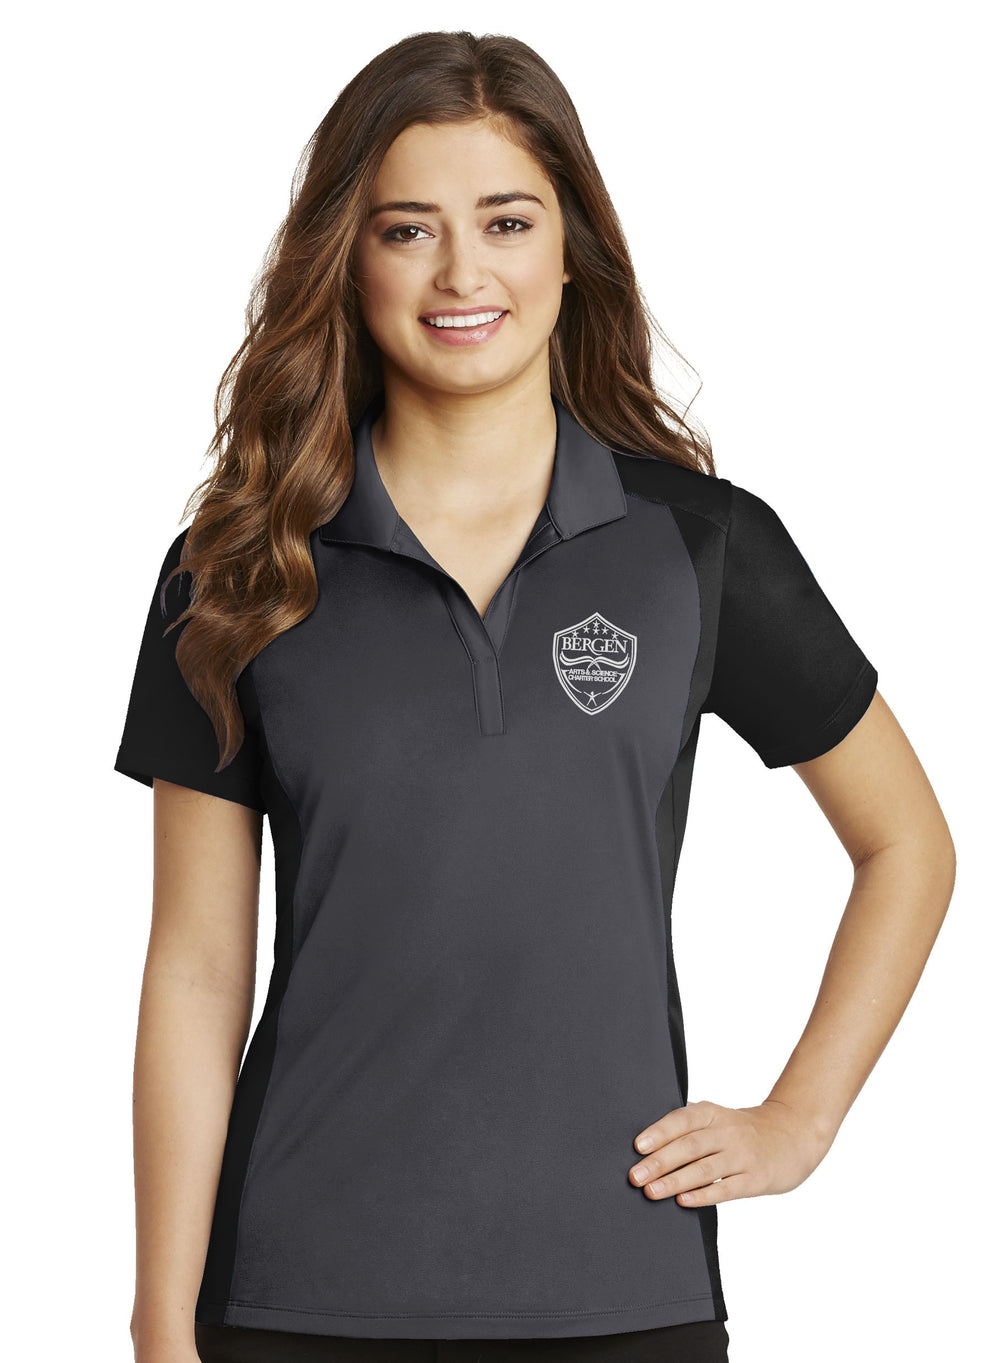 BERGEN HIGH LADIES POLO SHIRTS